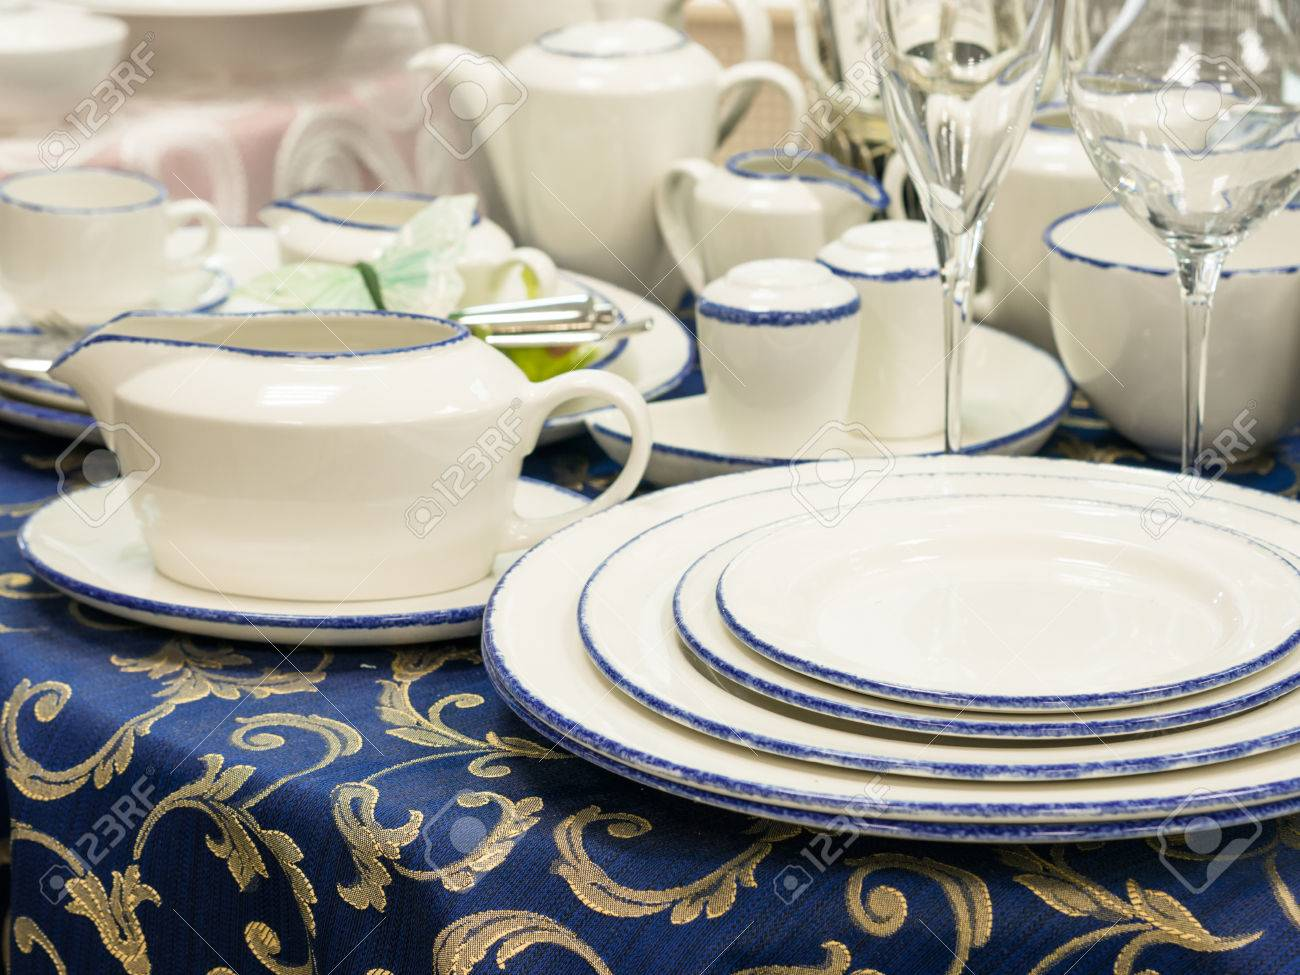 Set of new dishes on table with blue tablecloth. Stack of plates saucer and & Set Of New Dishes On Table With Blue Tablecloth. Stack Of Plates ...